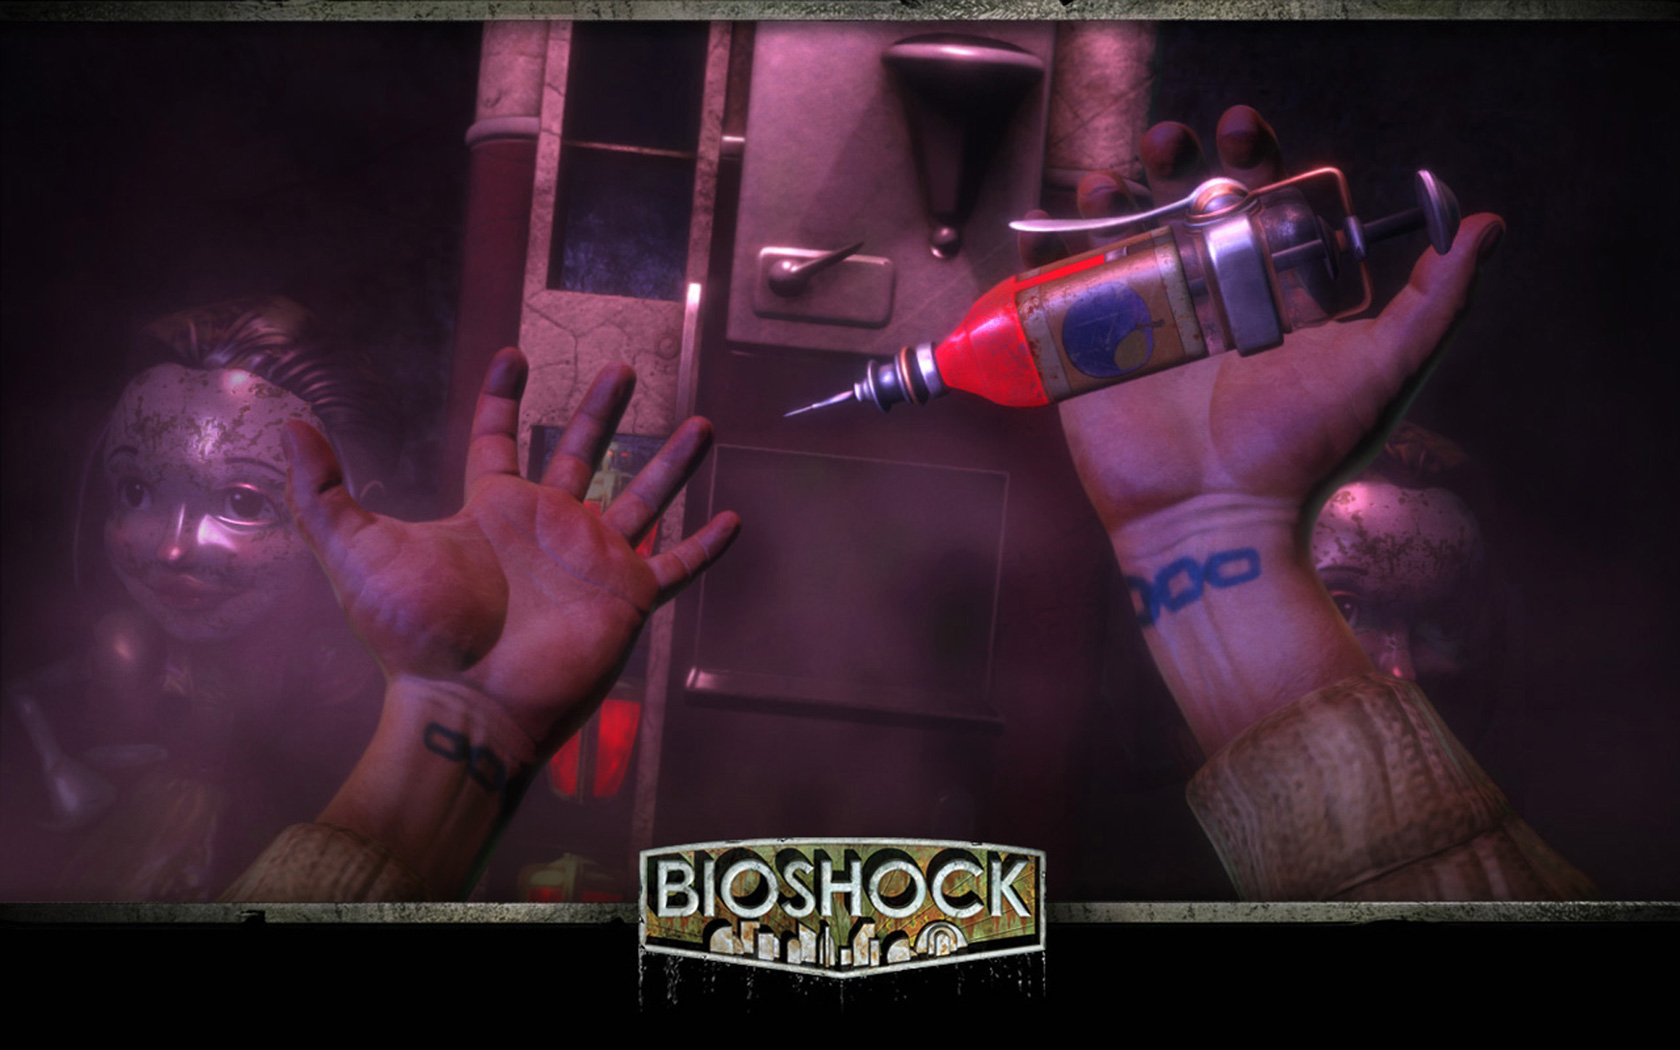 Free Bioshock Wallpaper in 1680x1050